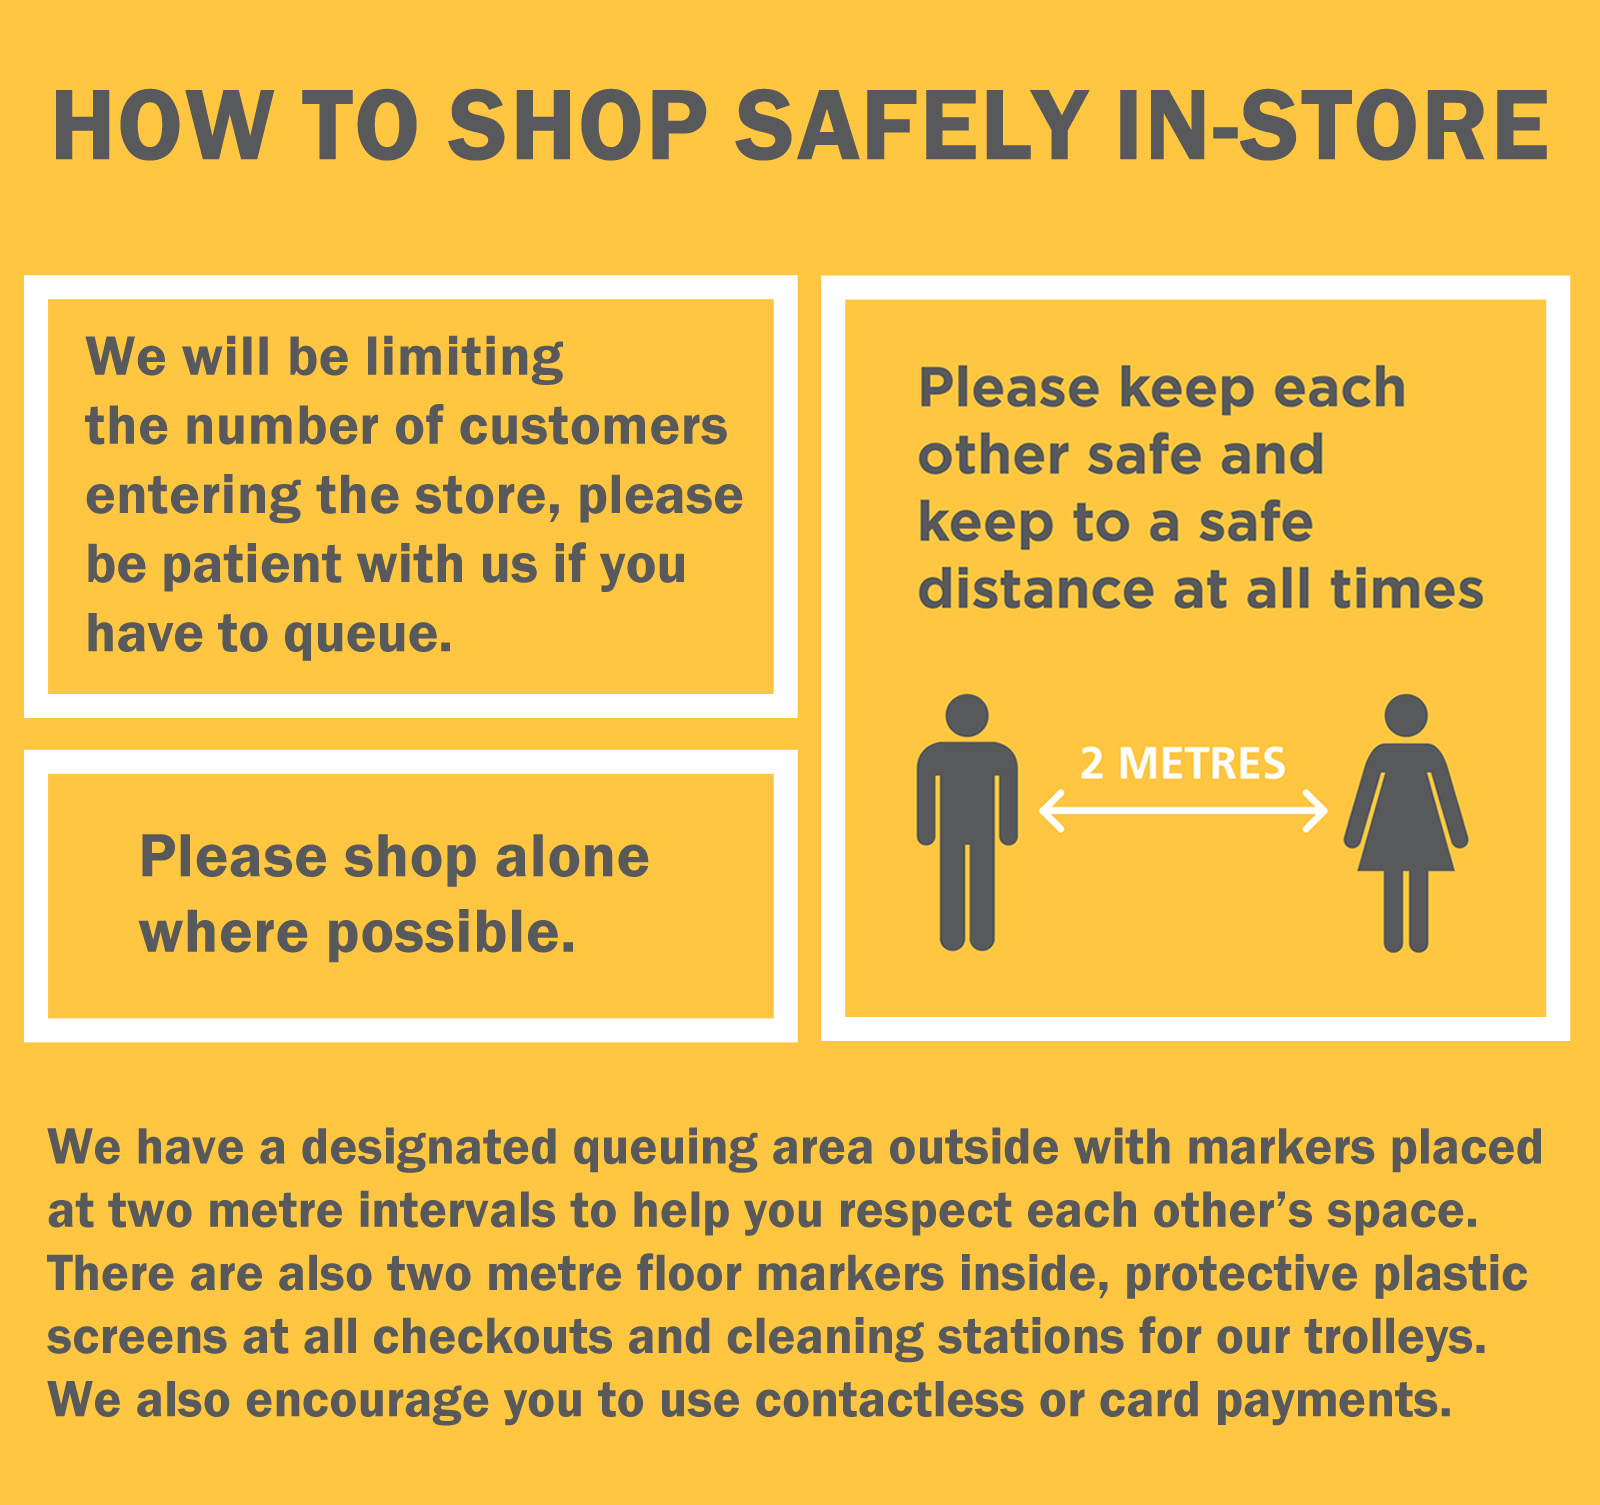 How to shop safely